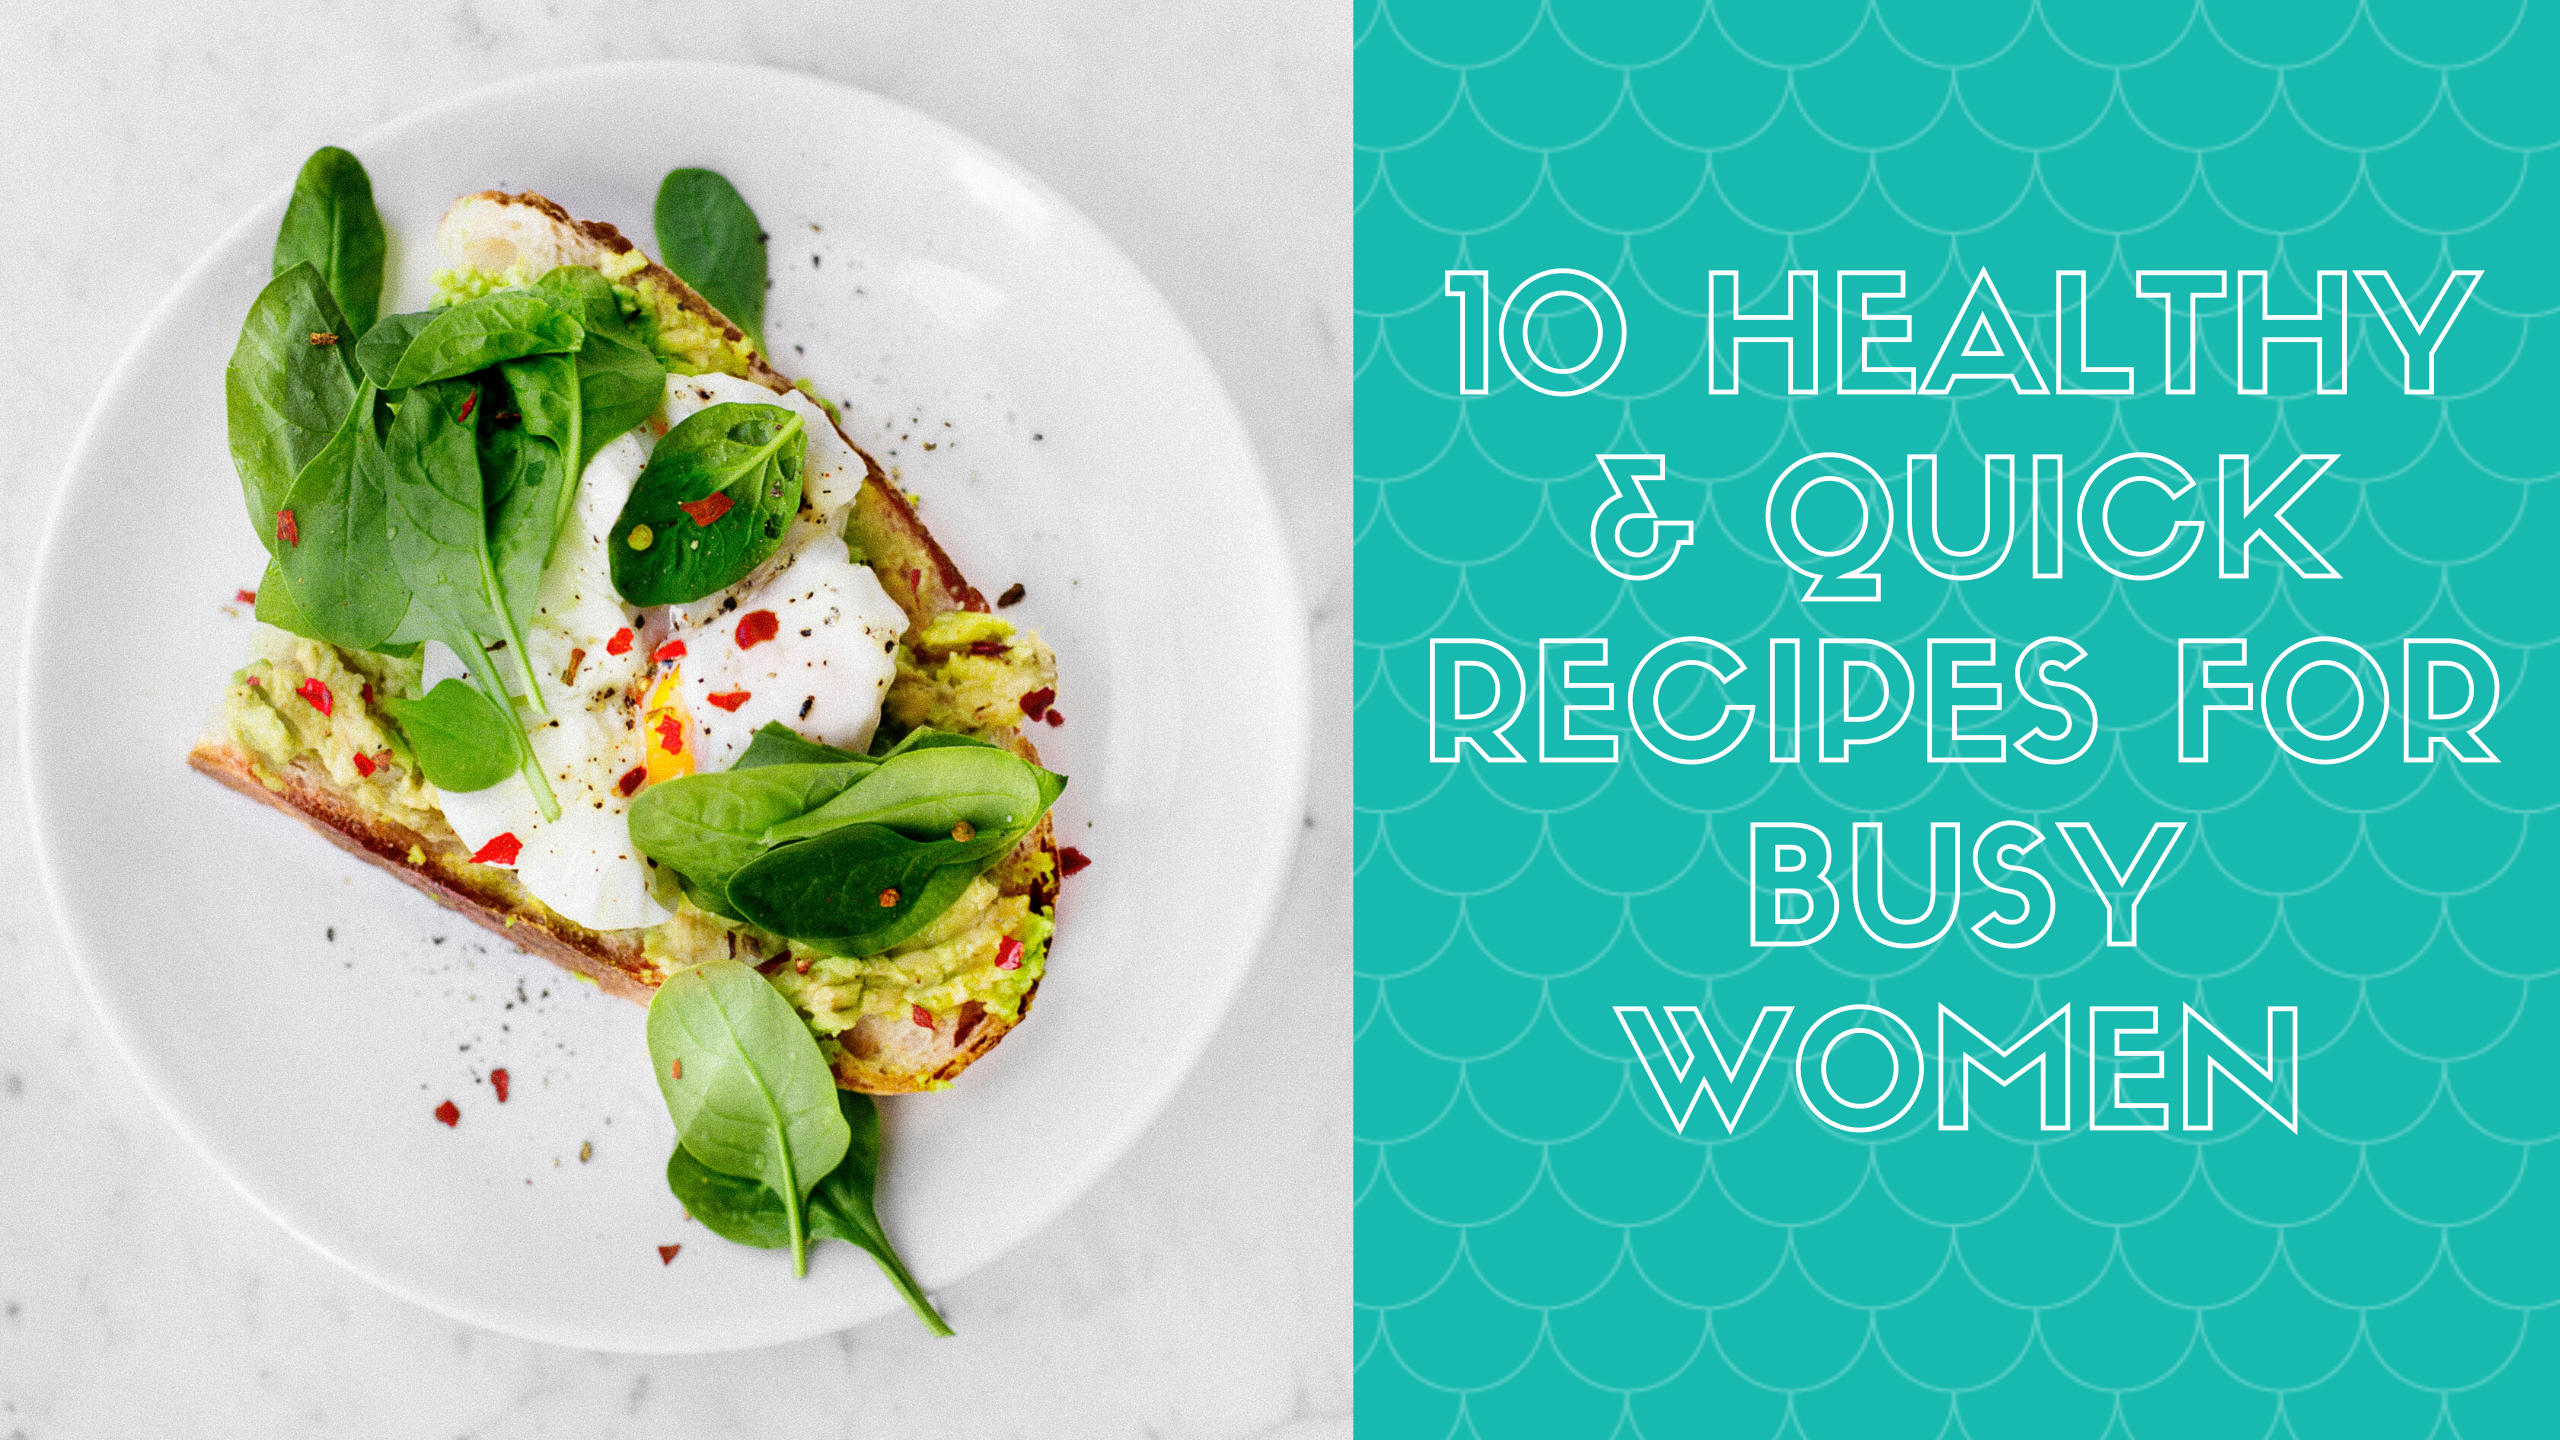 10 healthy recipes for busy women